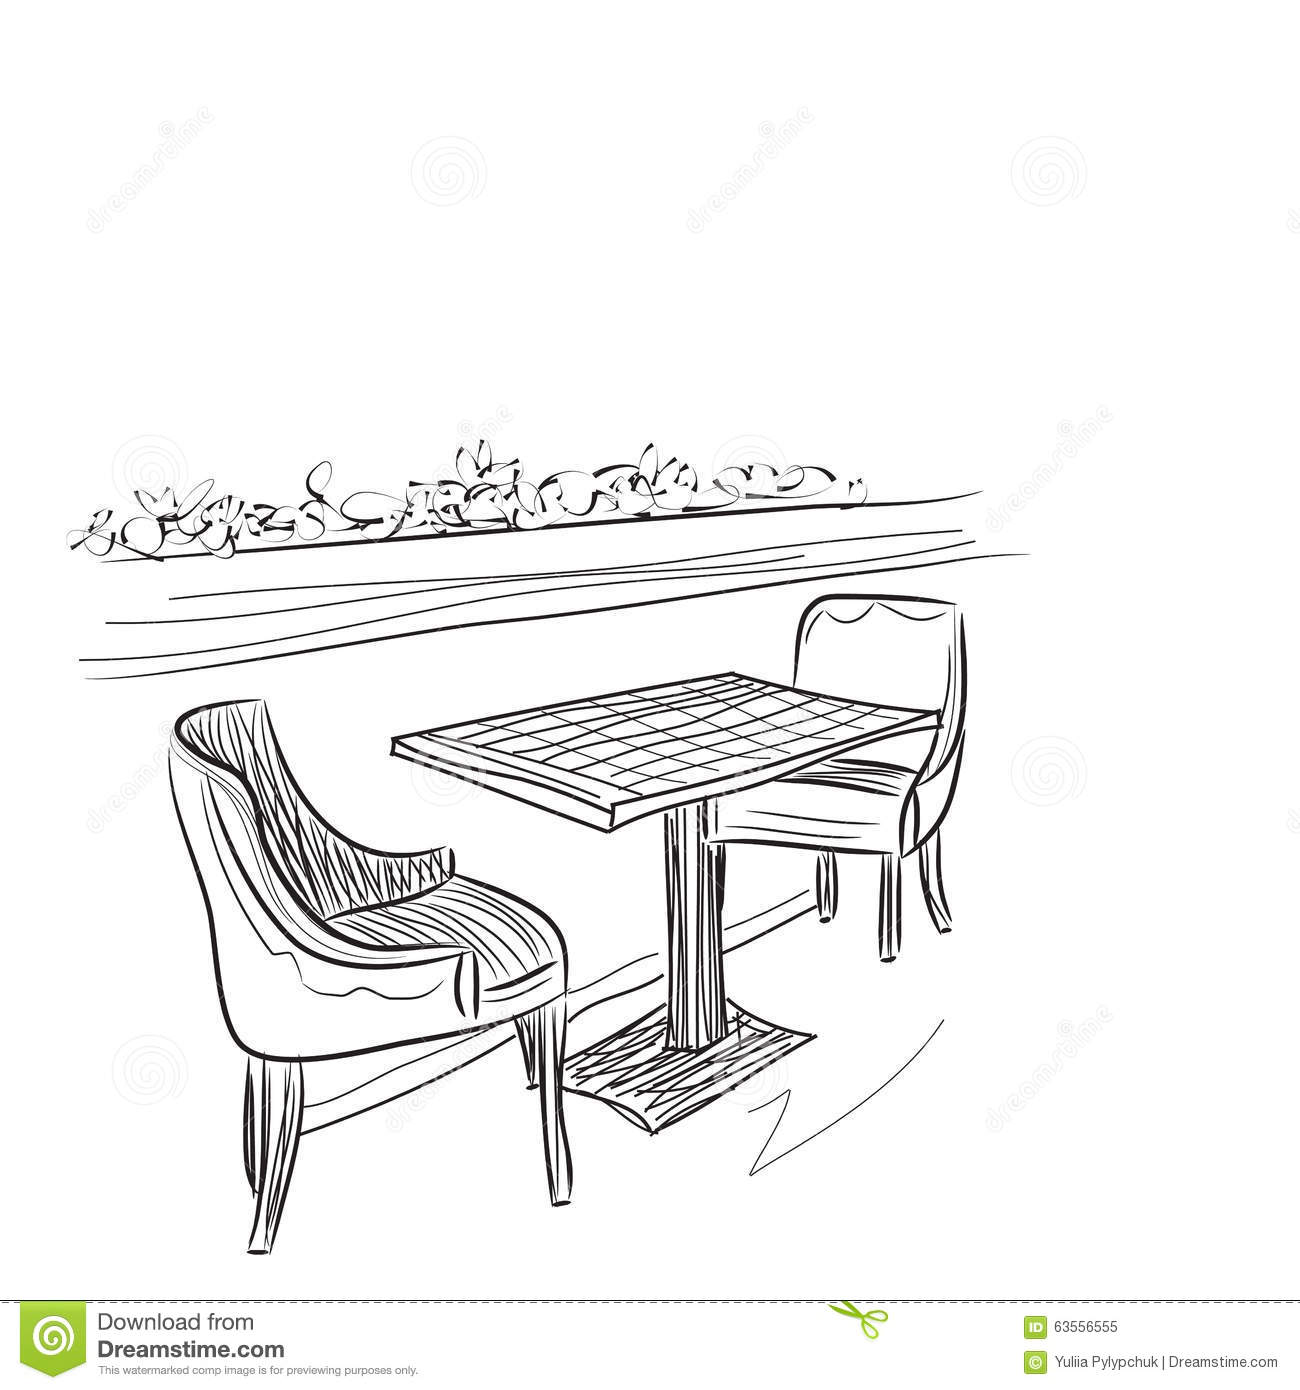 Cafe drawing interior - Drawing Cafe Interior Royalty Free Stock Photo